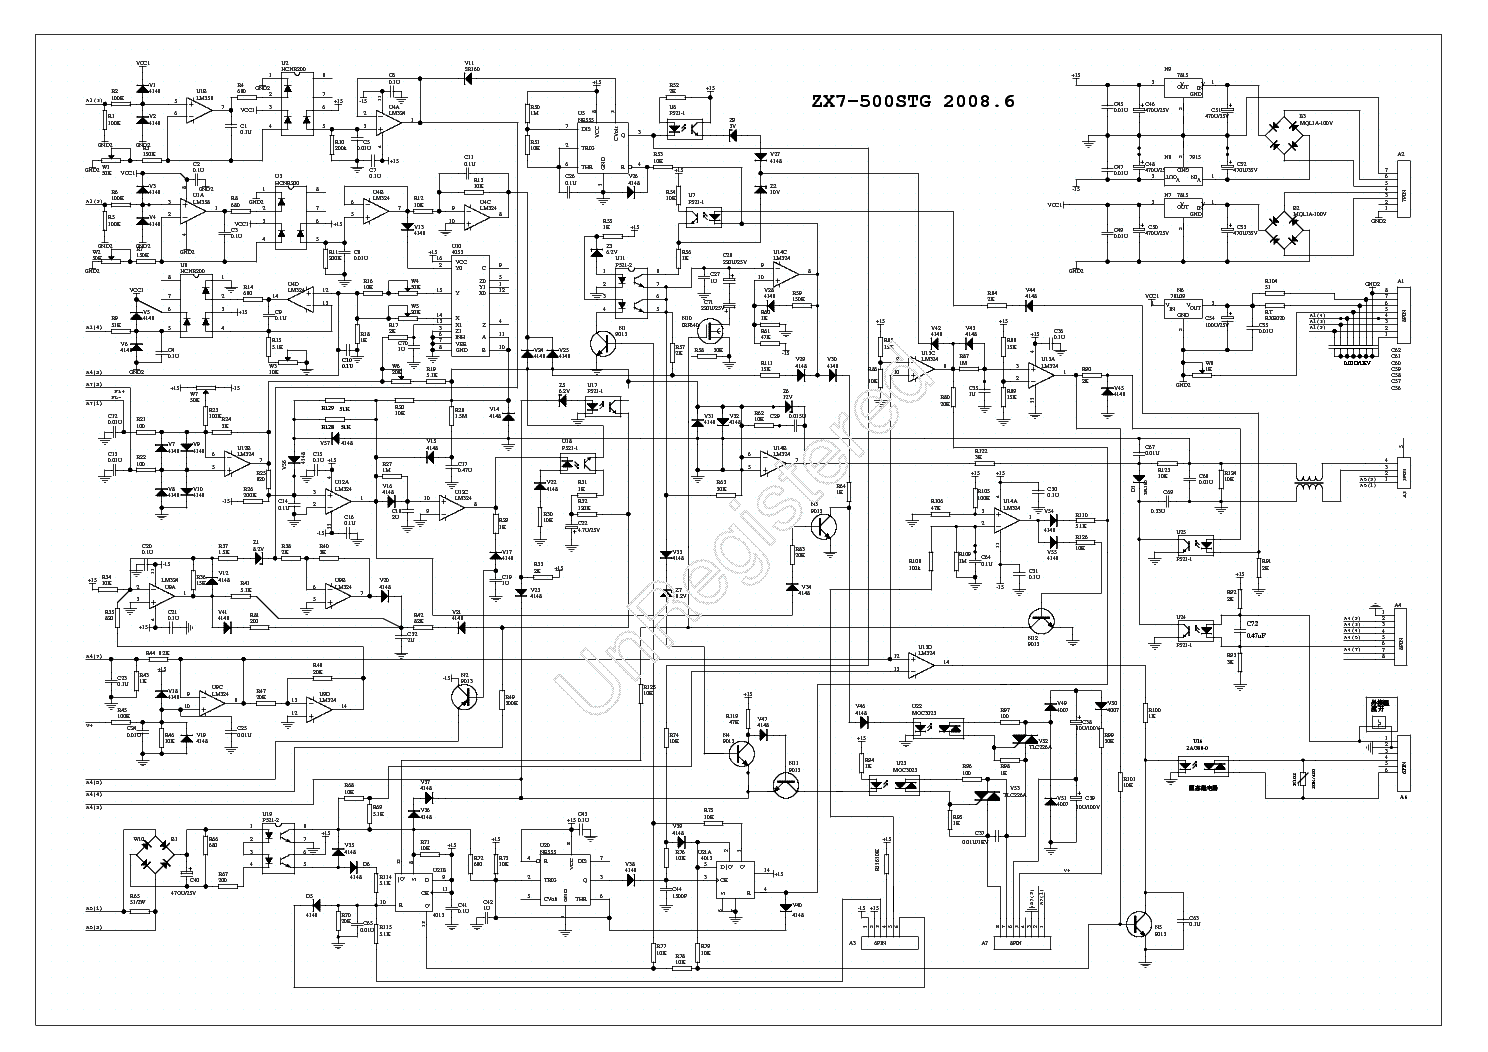 dc inverter welder schematic dc get free image about wiring diagram inverter  welding machine circuit diagram inverter welding machine circuit diagram